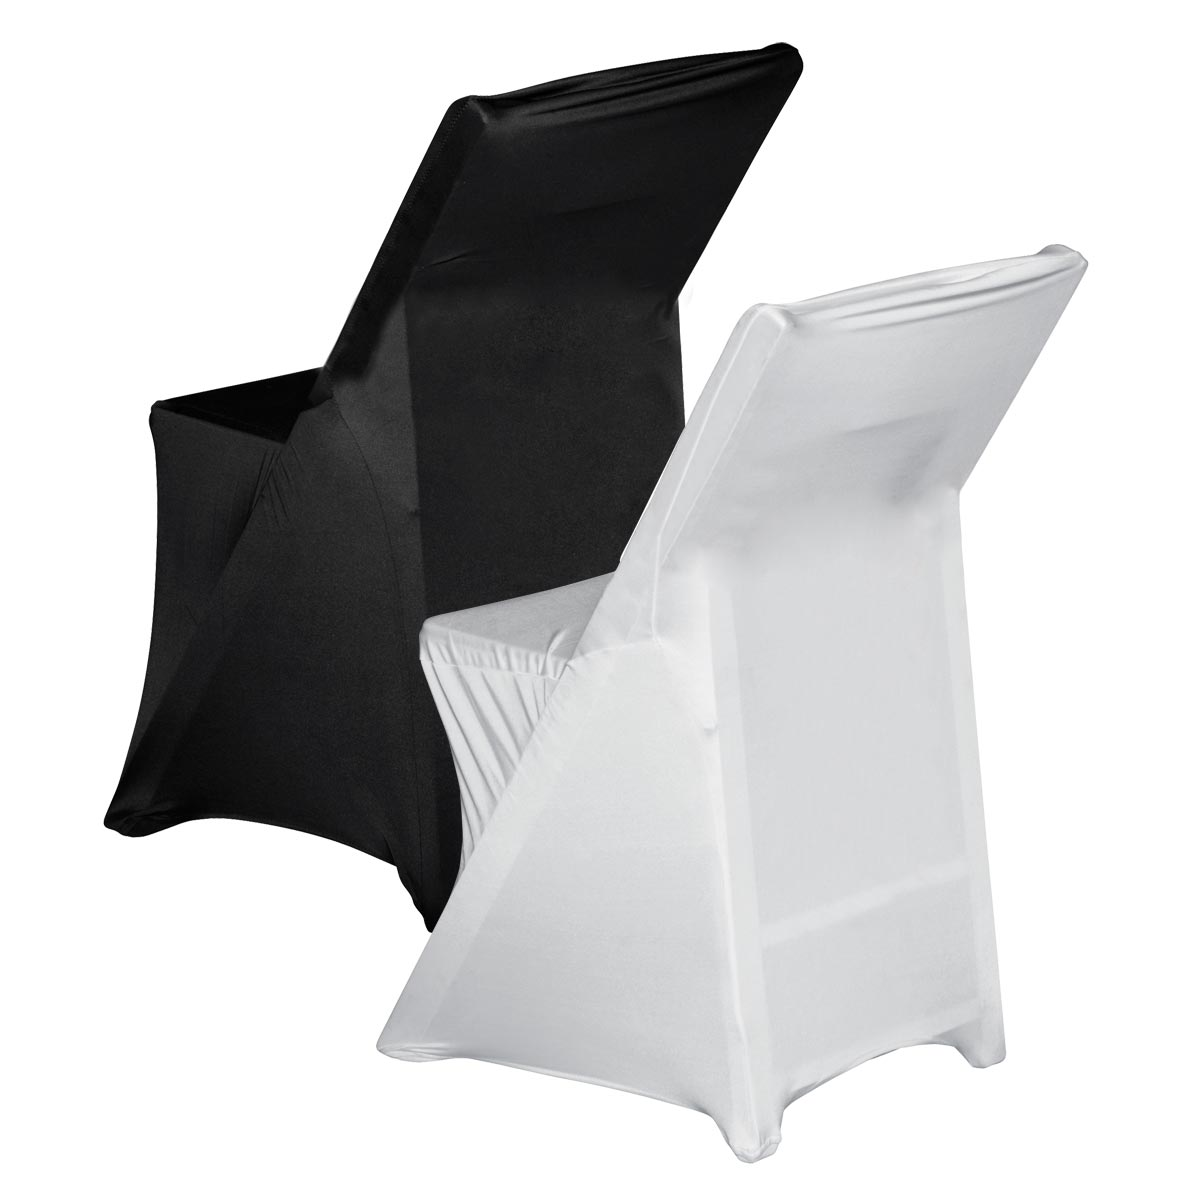 Spandex Table Covers Wholesale of wholesale spandex chair covers 1.00? I highly recommend Spandex ...